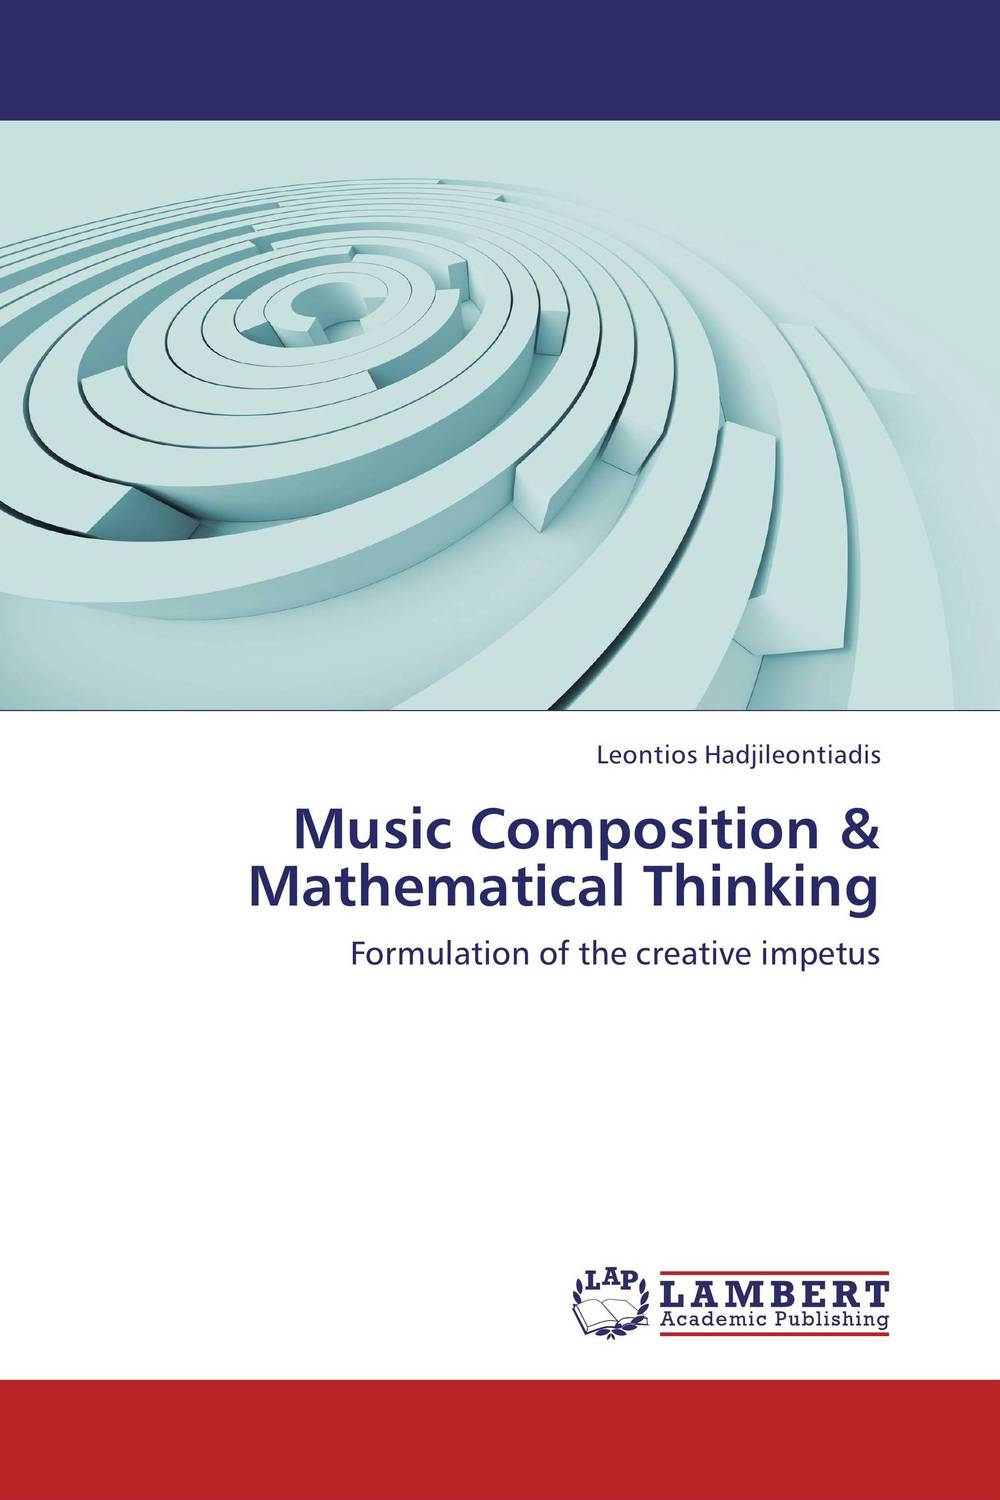 Music Composition & Mathematical Thinking chess and mathematical thinking